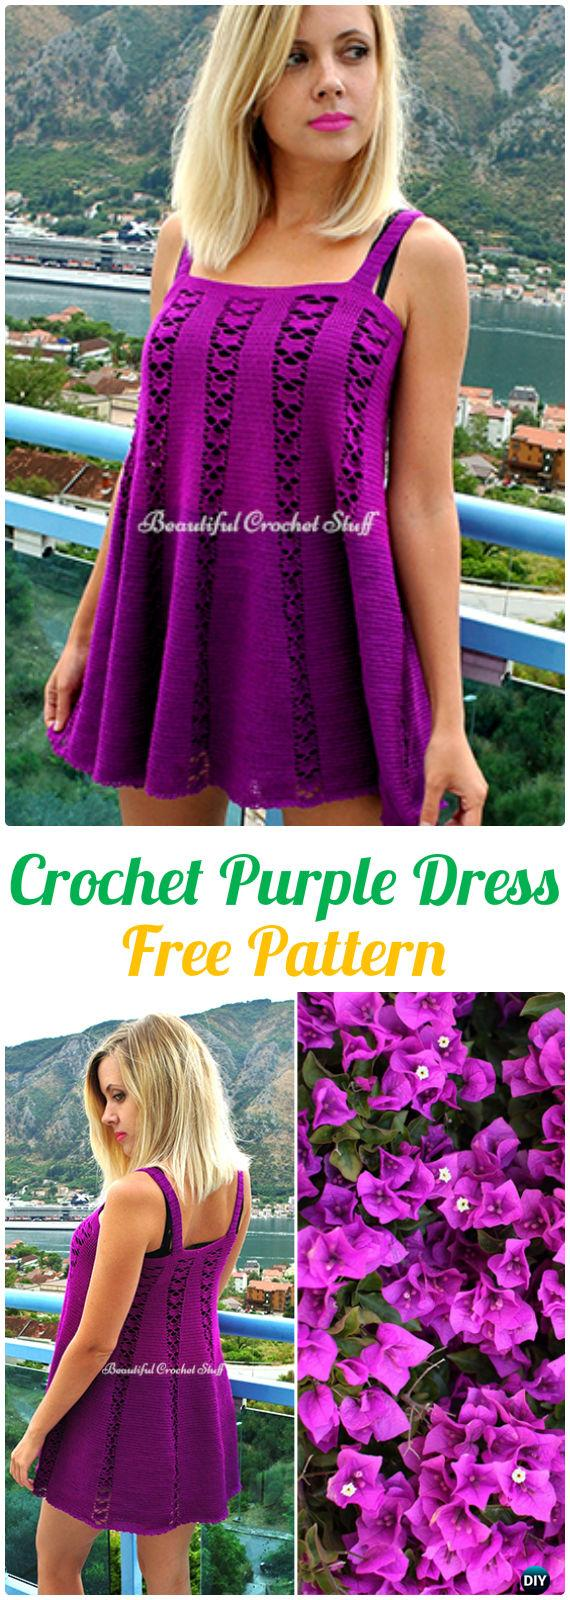 Crochet Purple Dress Free Pattern - Crochet Women Dress Free Patterns